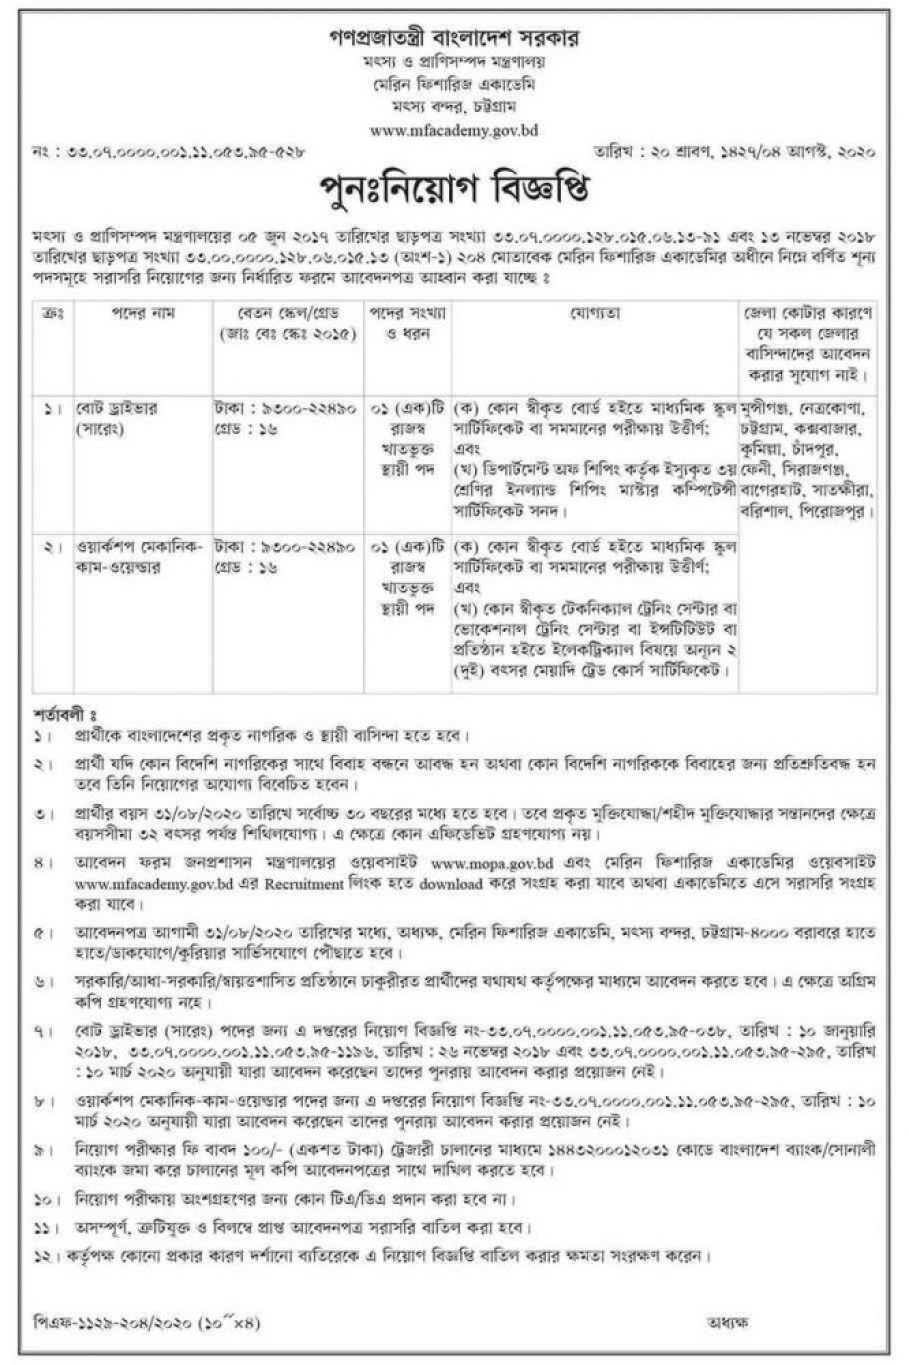 ministry of-fisheries-and-livestock-job-circular